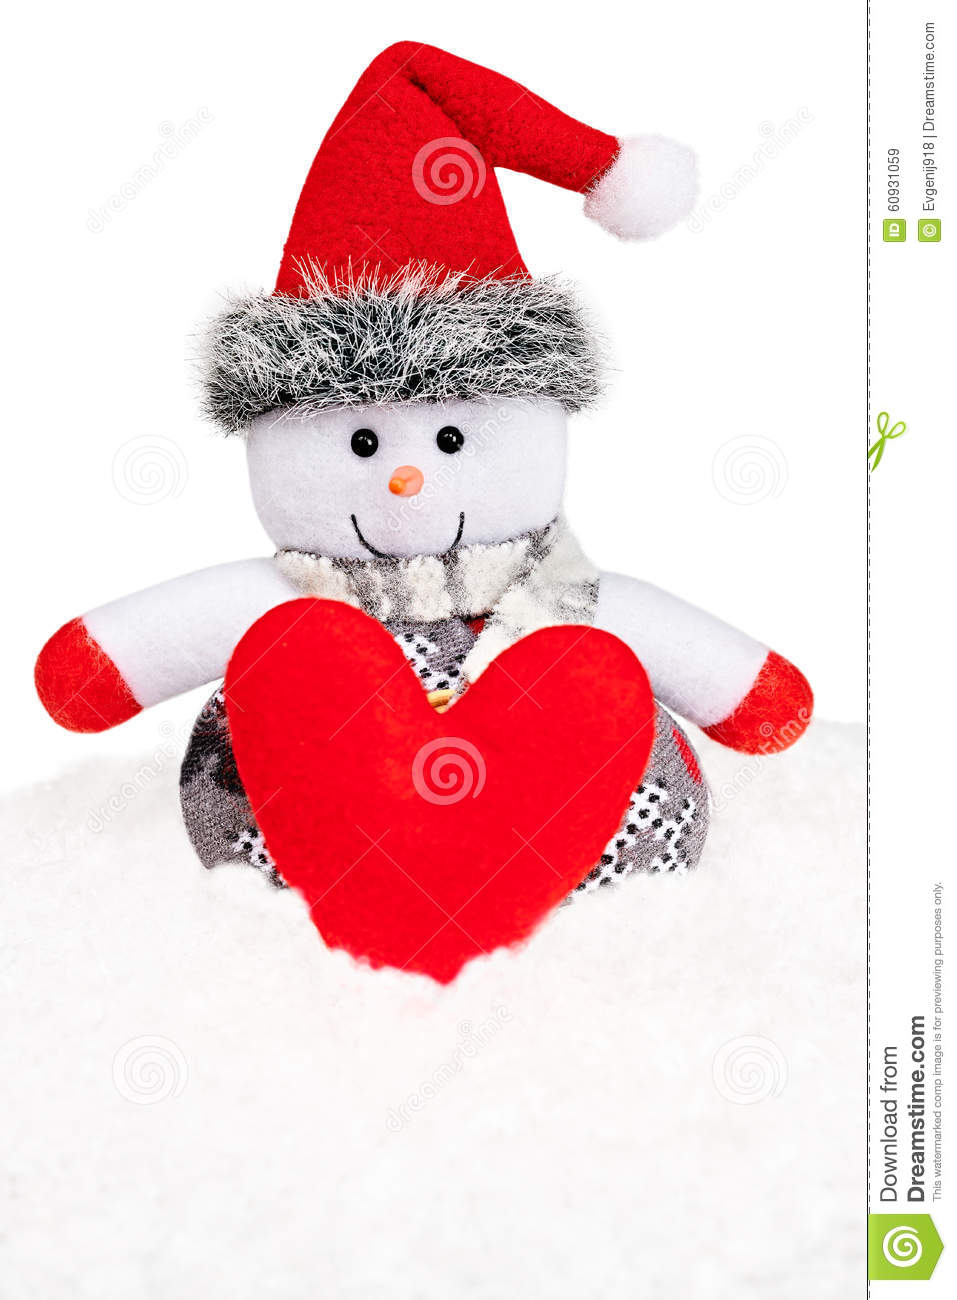 New Year 2016. Happy Snowman On Snow With Heart Stock Photo - Image: 60931059